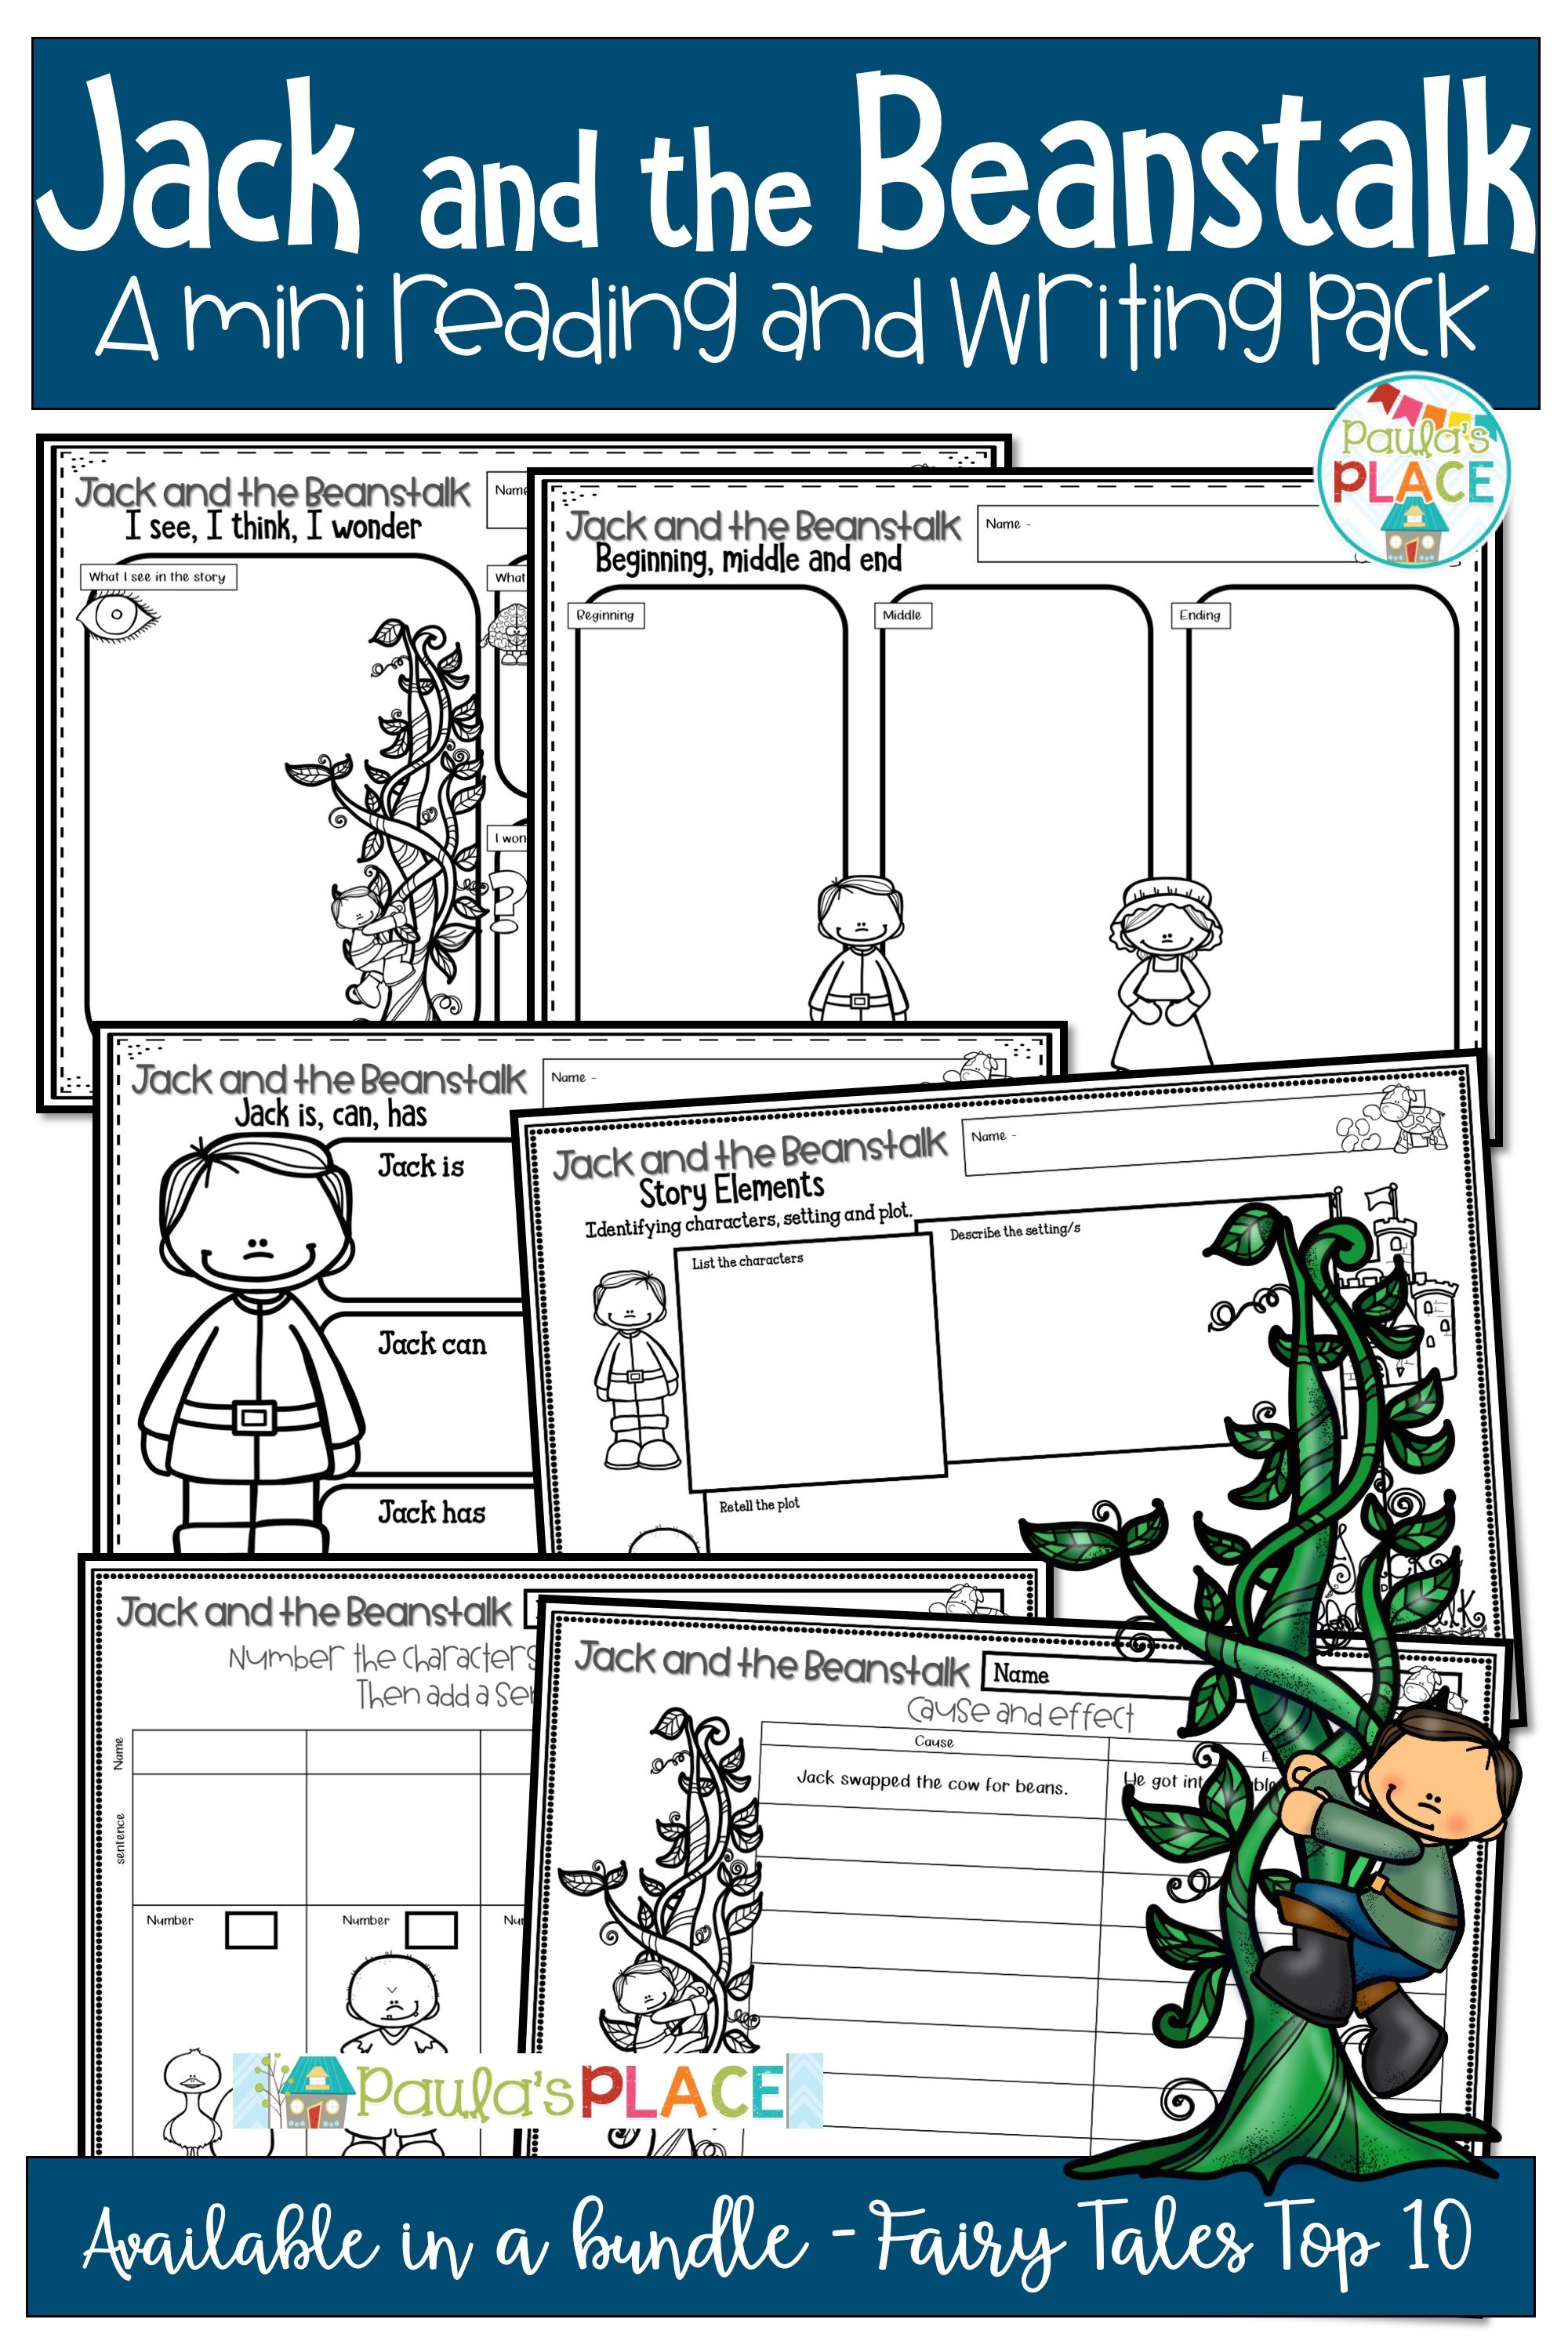 Jack And The Beanstalk Mini Reading And Writing Activities